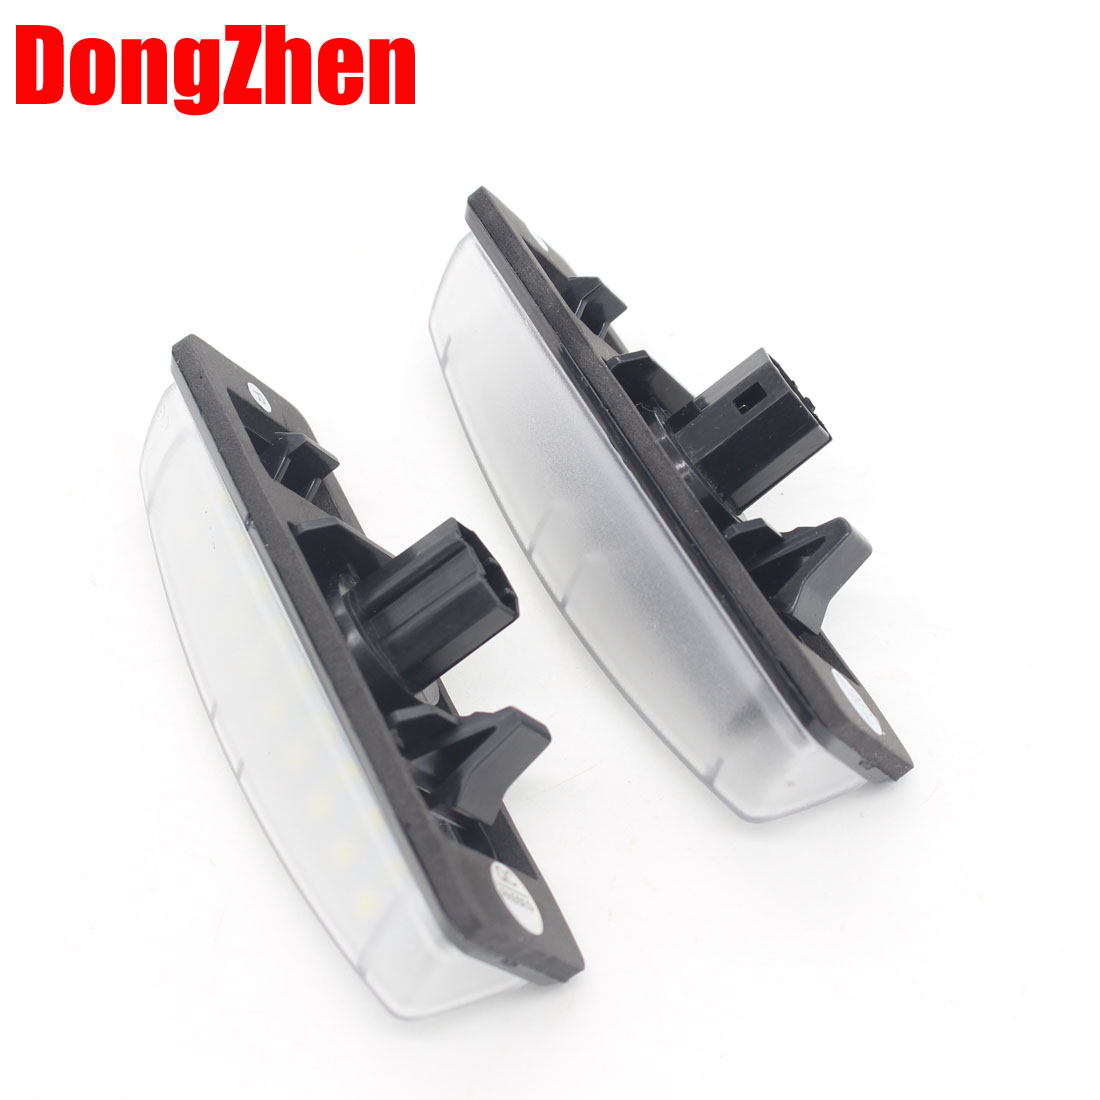 DongZhen Fir For TOYOTA Camry Aurion Avensis Verso ACR50 Lexus IS200 IS300 LS430 2pc 6000K LED License Plate Lamp Light беспроводная акустика interstep sbs 150 funnybunny blue is ls sbs150blu 000b201